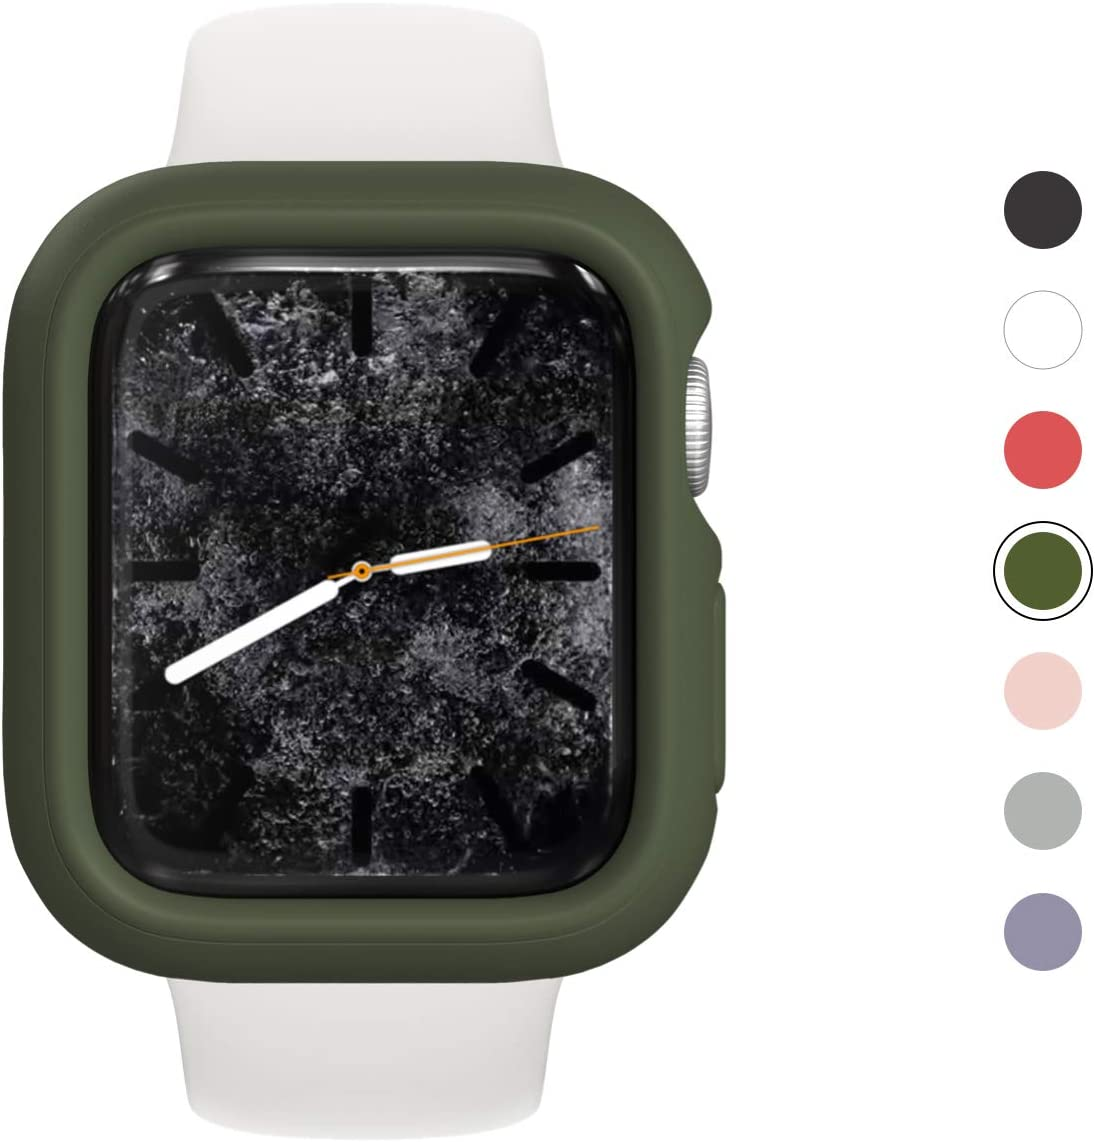 RhinoShield Bumper Case Compatible with Apple Watch Series 3/2 / 1 - [38mm]   Slim Protective Cover, Lightweight and Shock Absorbent - Camo Green